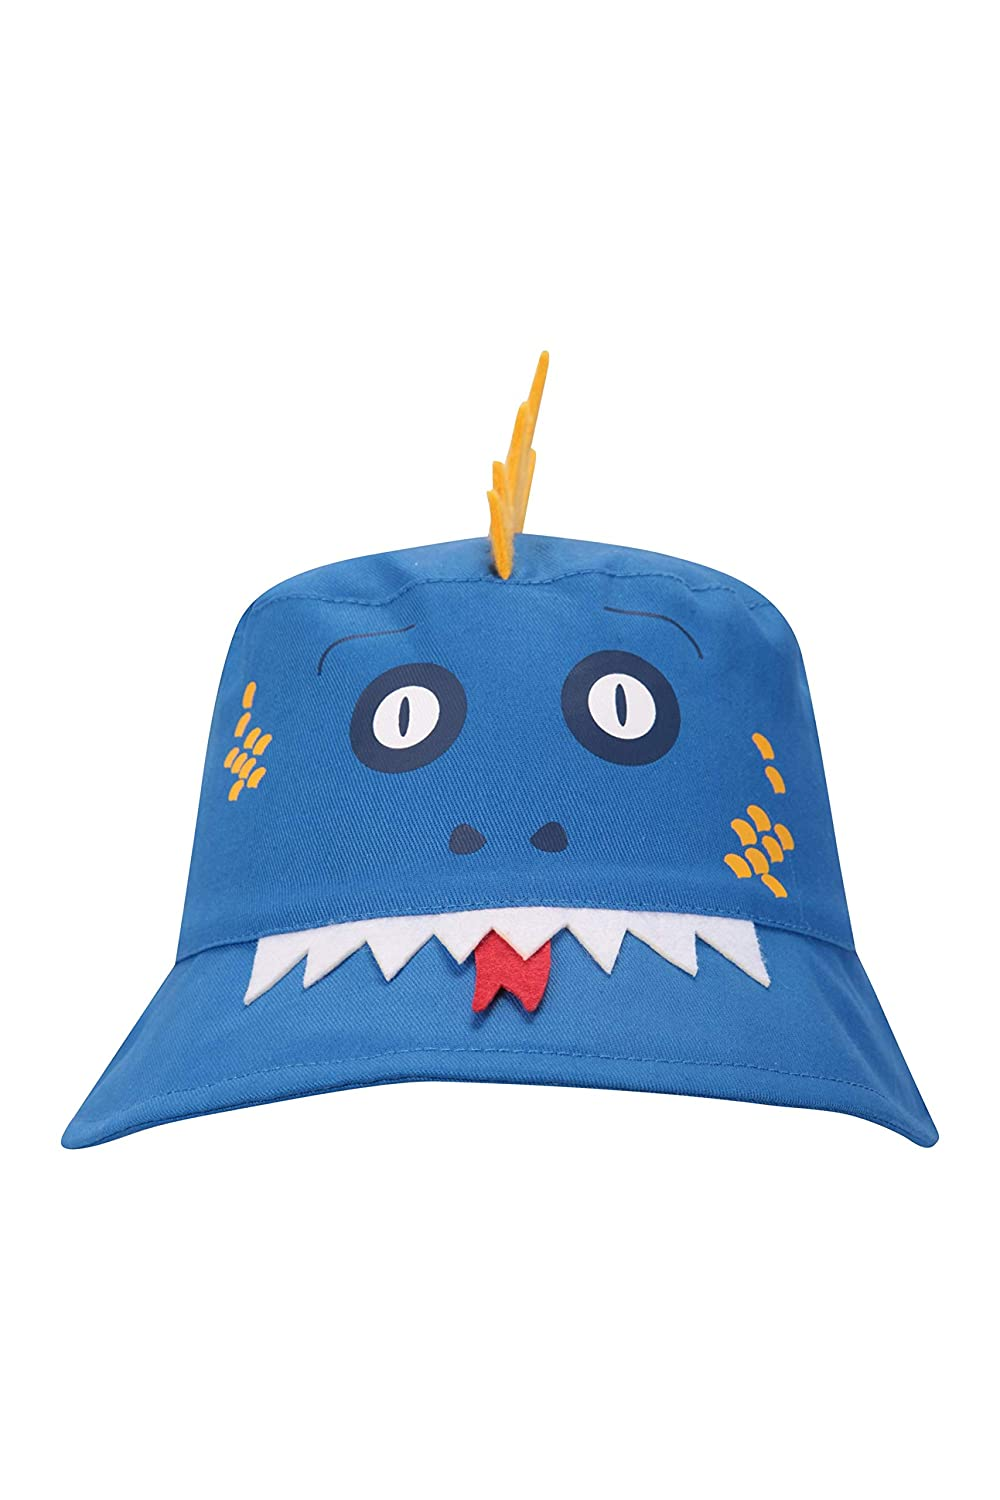 For Spring Travelling Easy Care Childrens Cap Mountain Warehouse Character Kids Bucket Hat -100/% Cotton Sun Hat Wide Brim Summer Hat Beach /& Camping Boys /& Girls